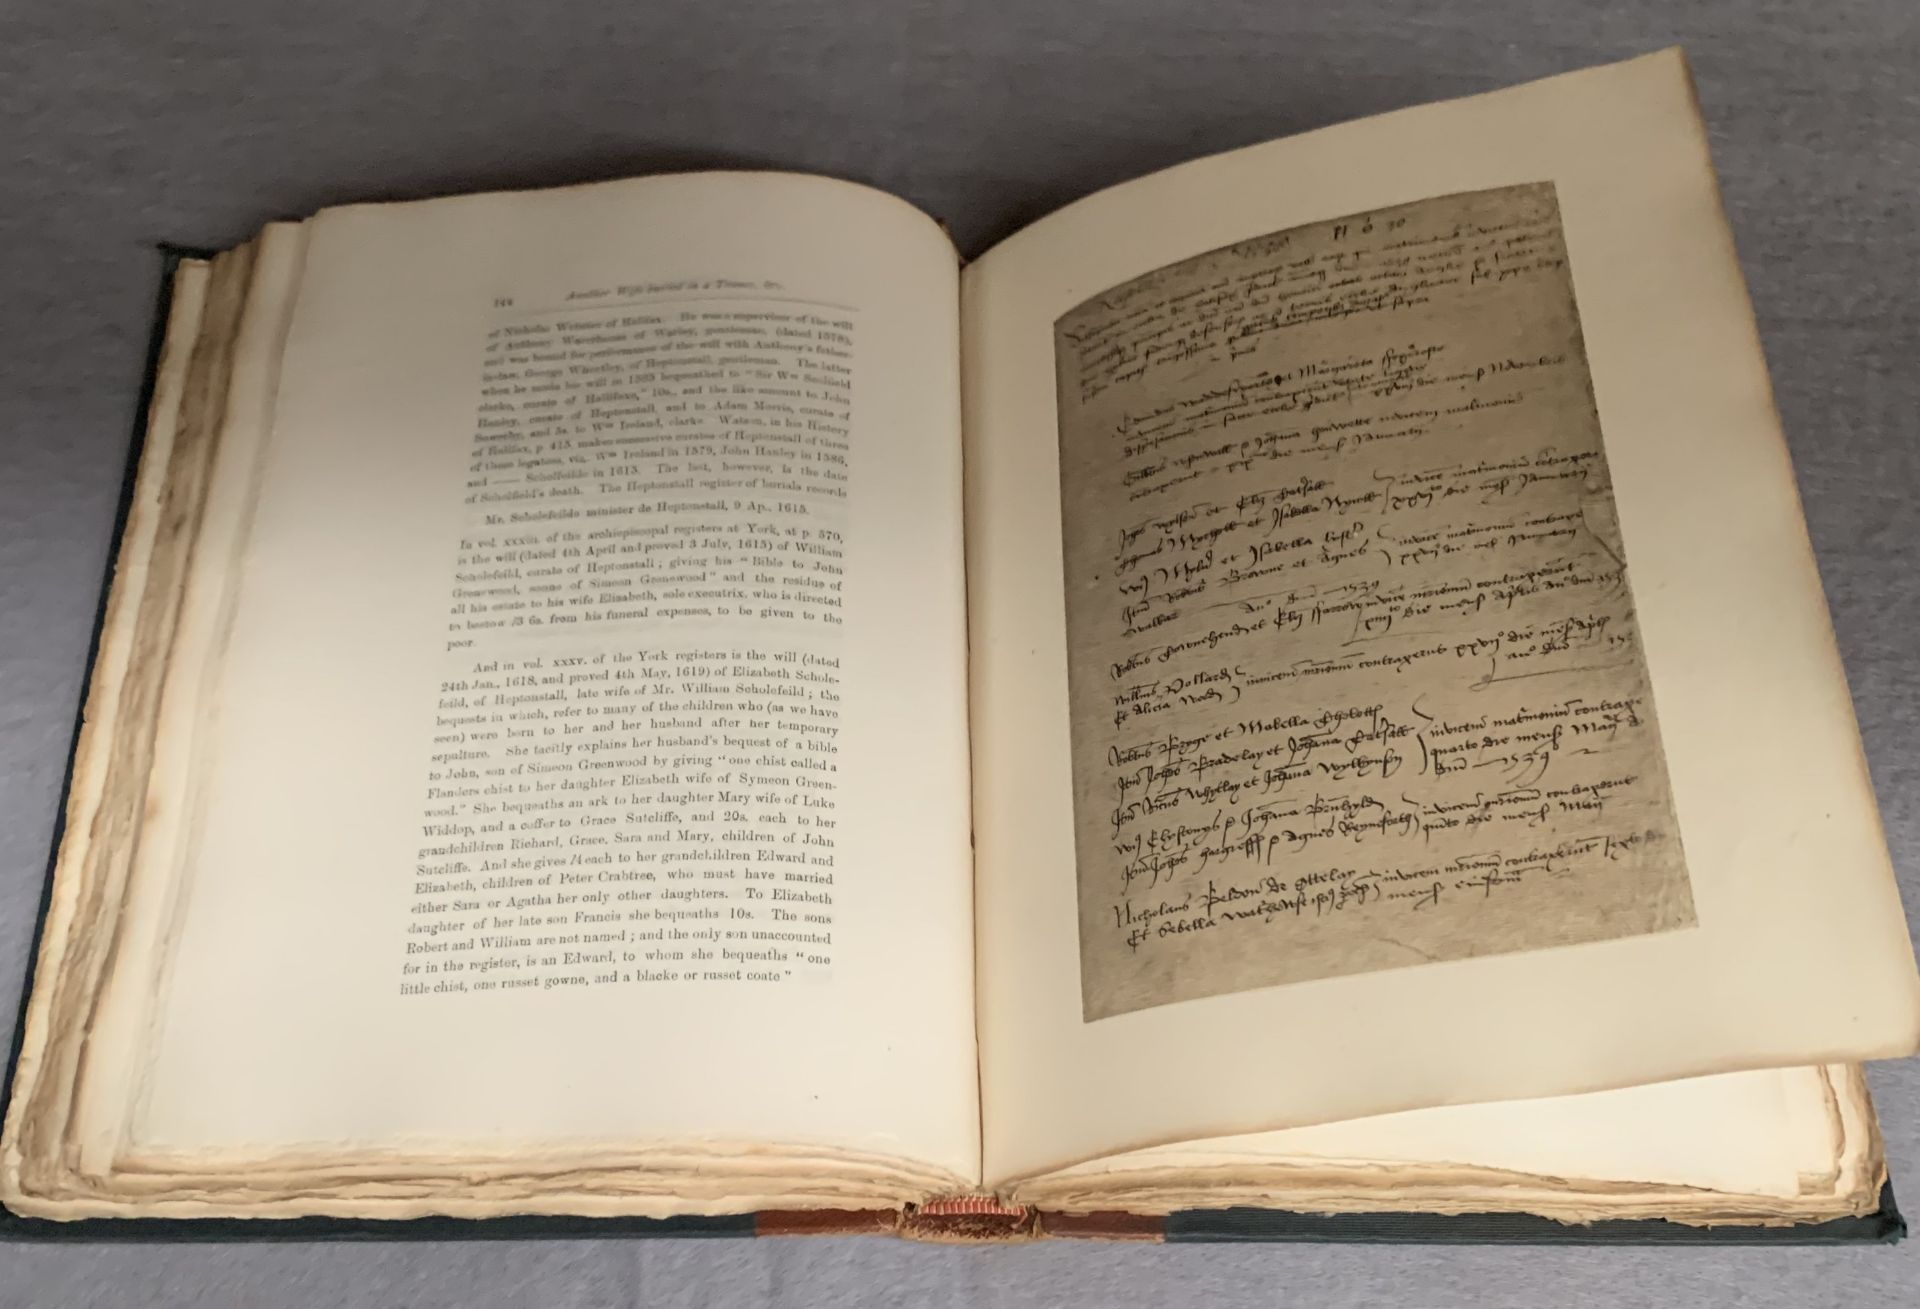 Lot 515 - Walter James Walker chapters on The Early |Register of Halifax Parish Church from the local